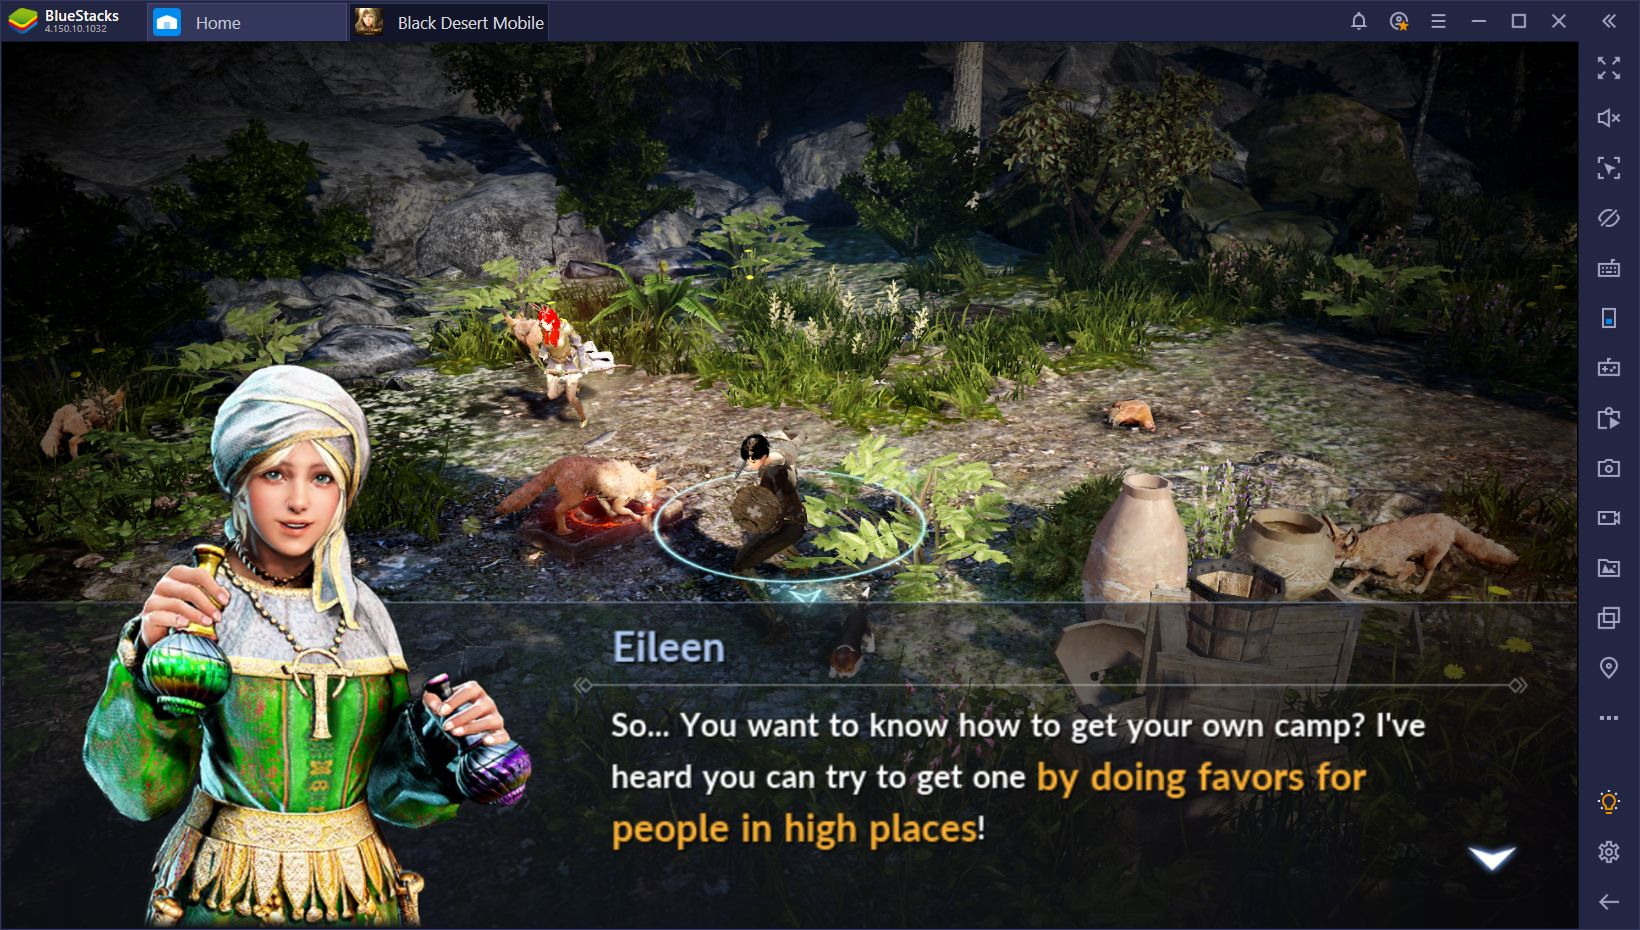 Black Desert Mobile Just Launched Globally: Here's What You Should Know